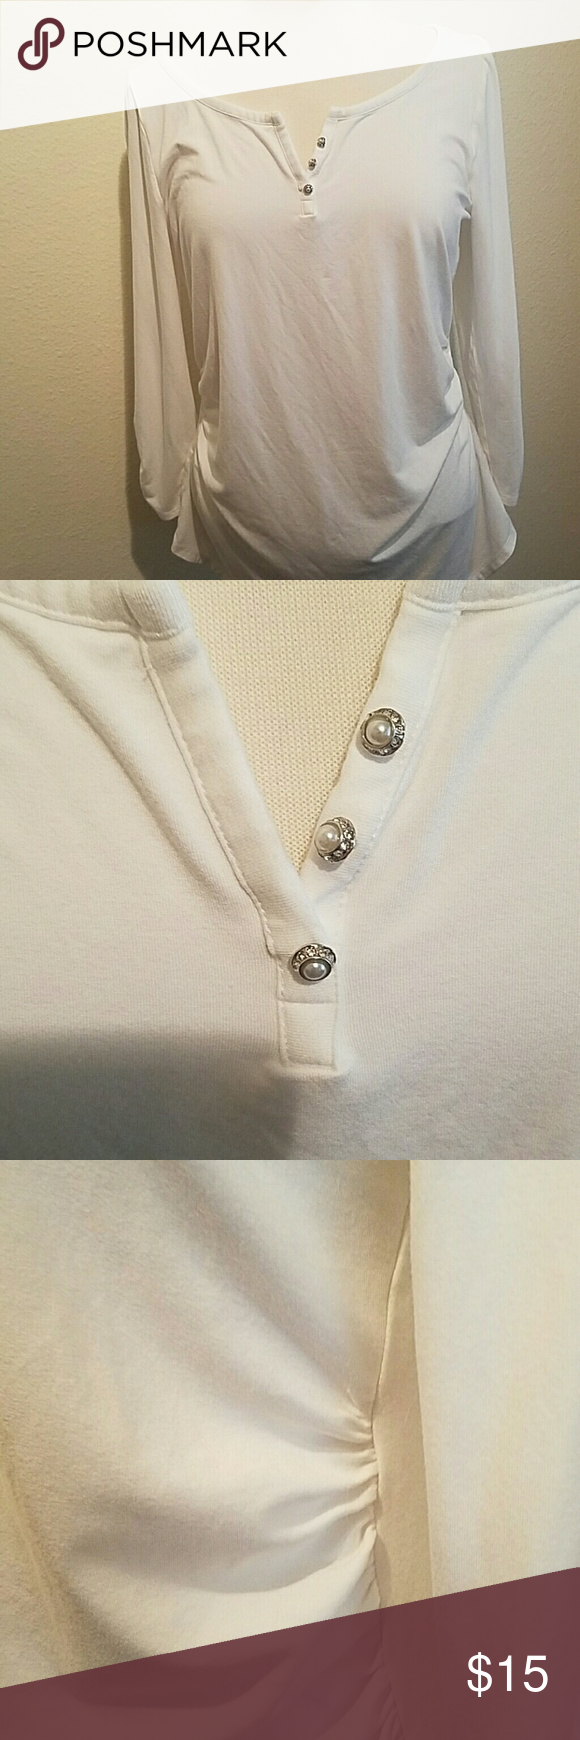 WHBM stretchy top Very figure flattering with ruched sides and sleeves.  Sparkly buttons at neckline.  EUC, no stains or spots. The size tag was cut but is a size large.  Fits a 14 perfect. White House Black Market Tops